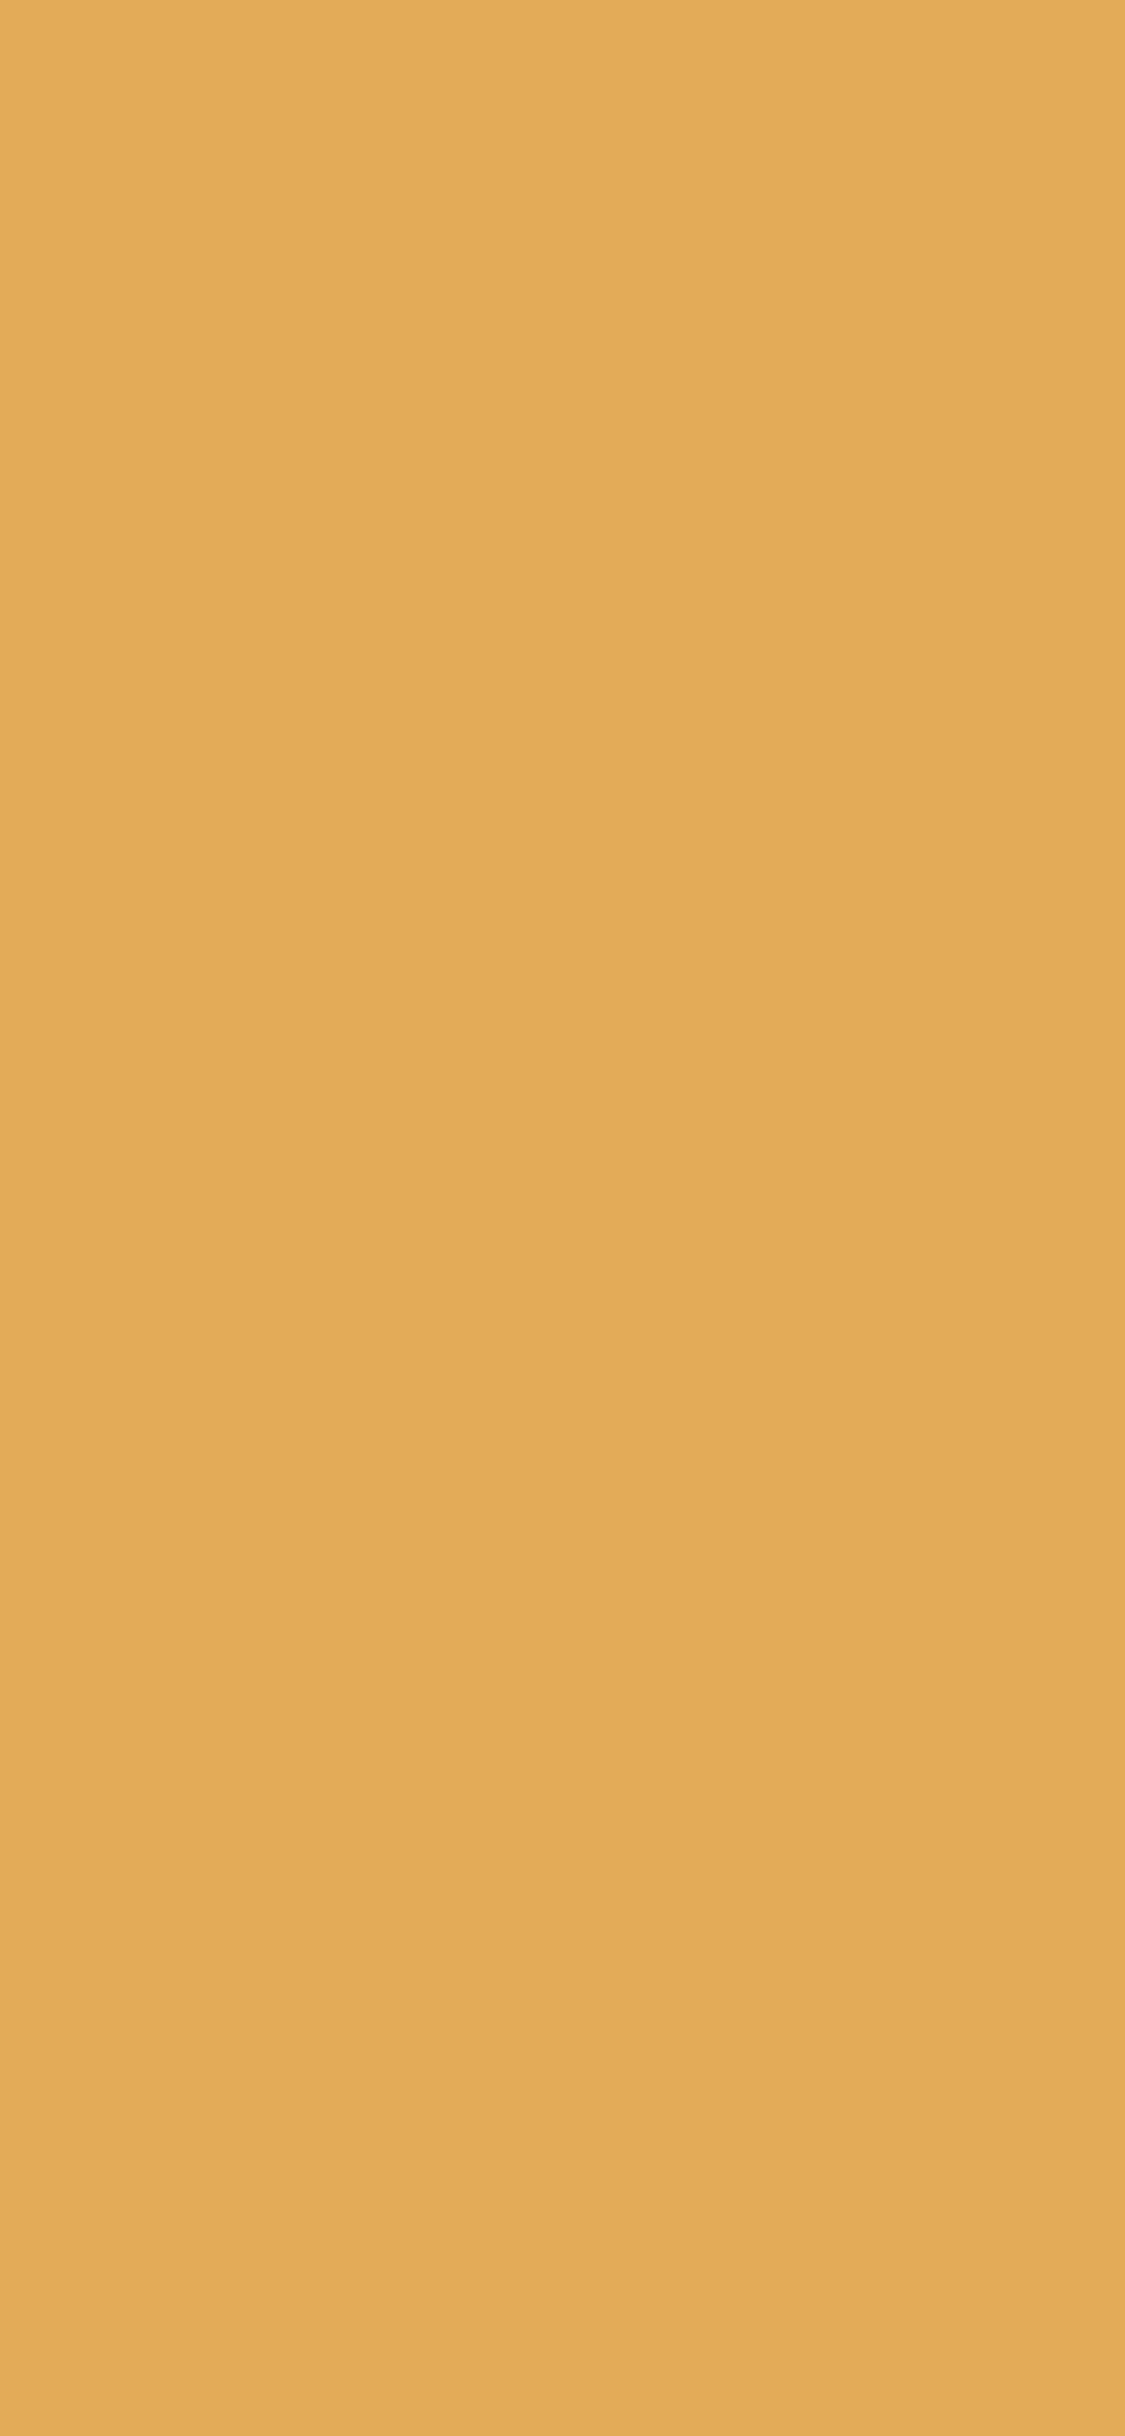 1125x2436 Sunray Solid Color Background